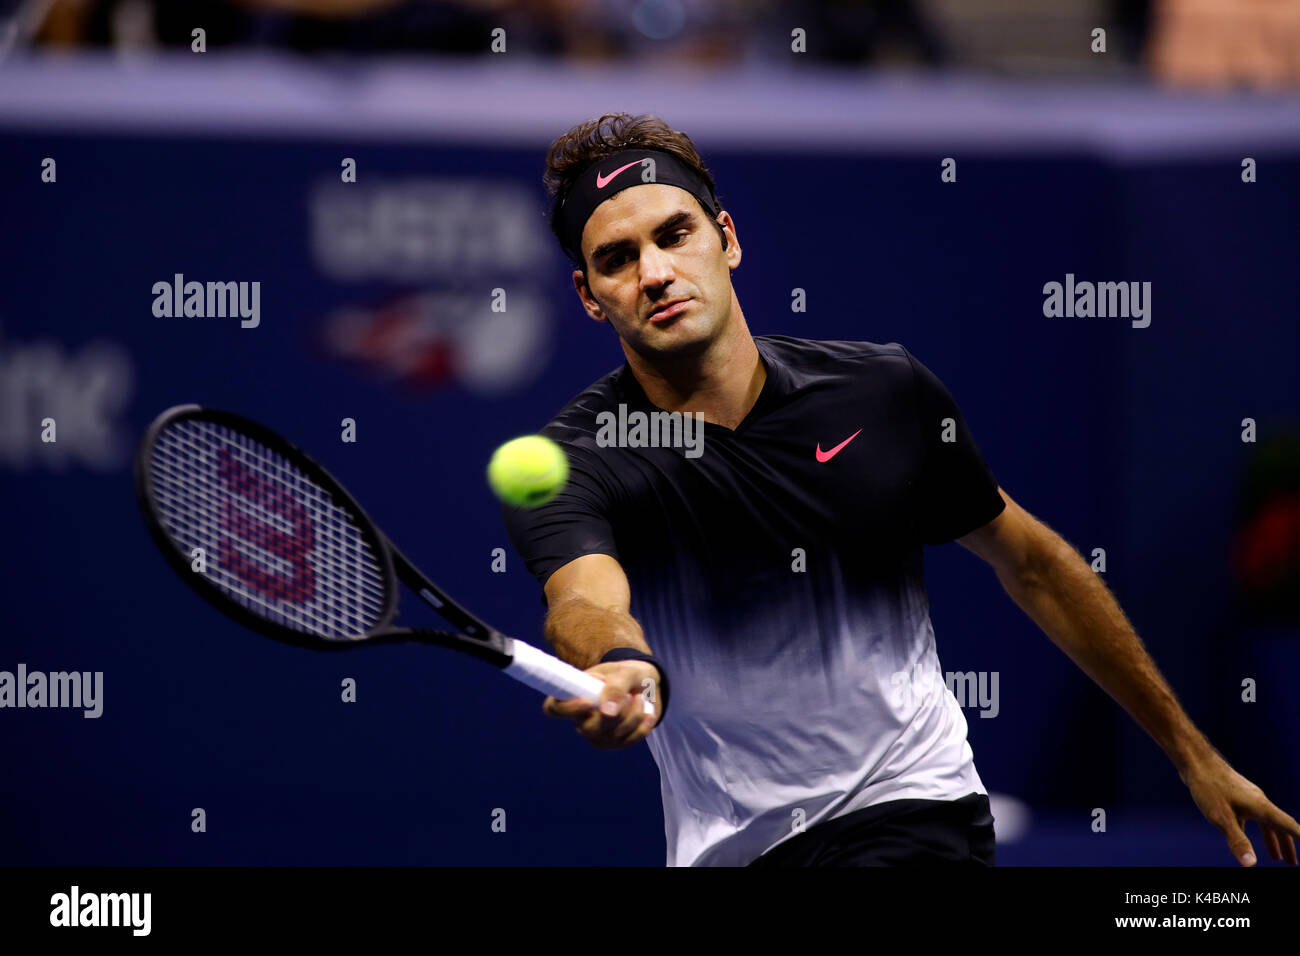 New York, United States. 04th Sep, 2017. US Open Tennis: New York, 4 September, 2017 - Roger Federer during his - Stock Image